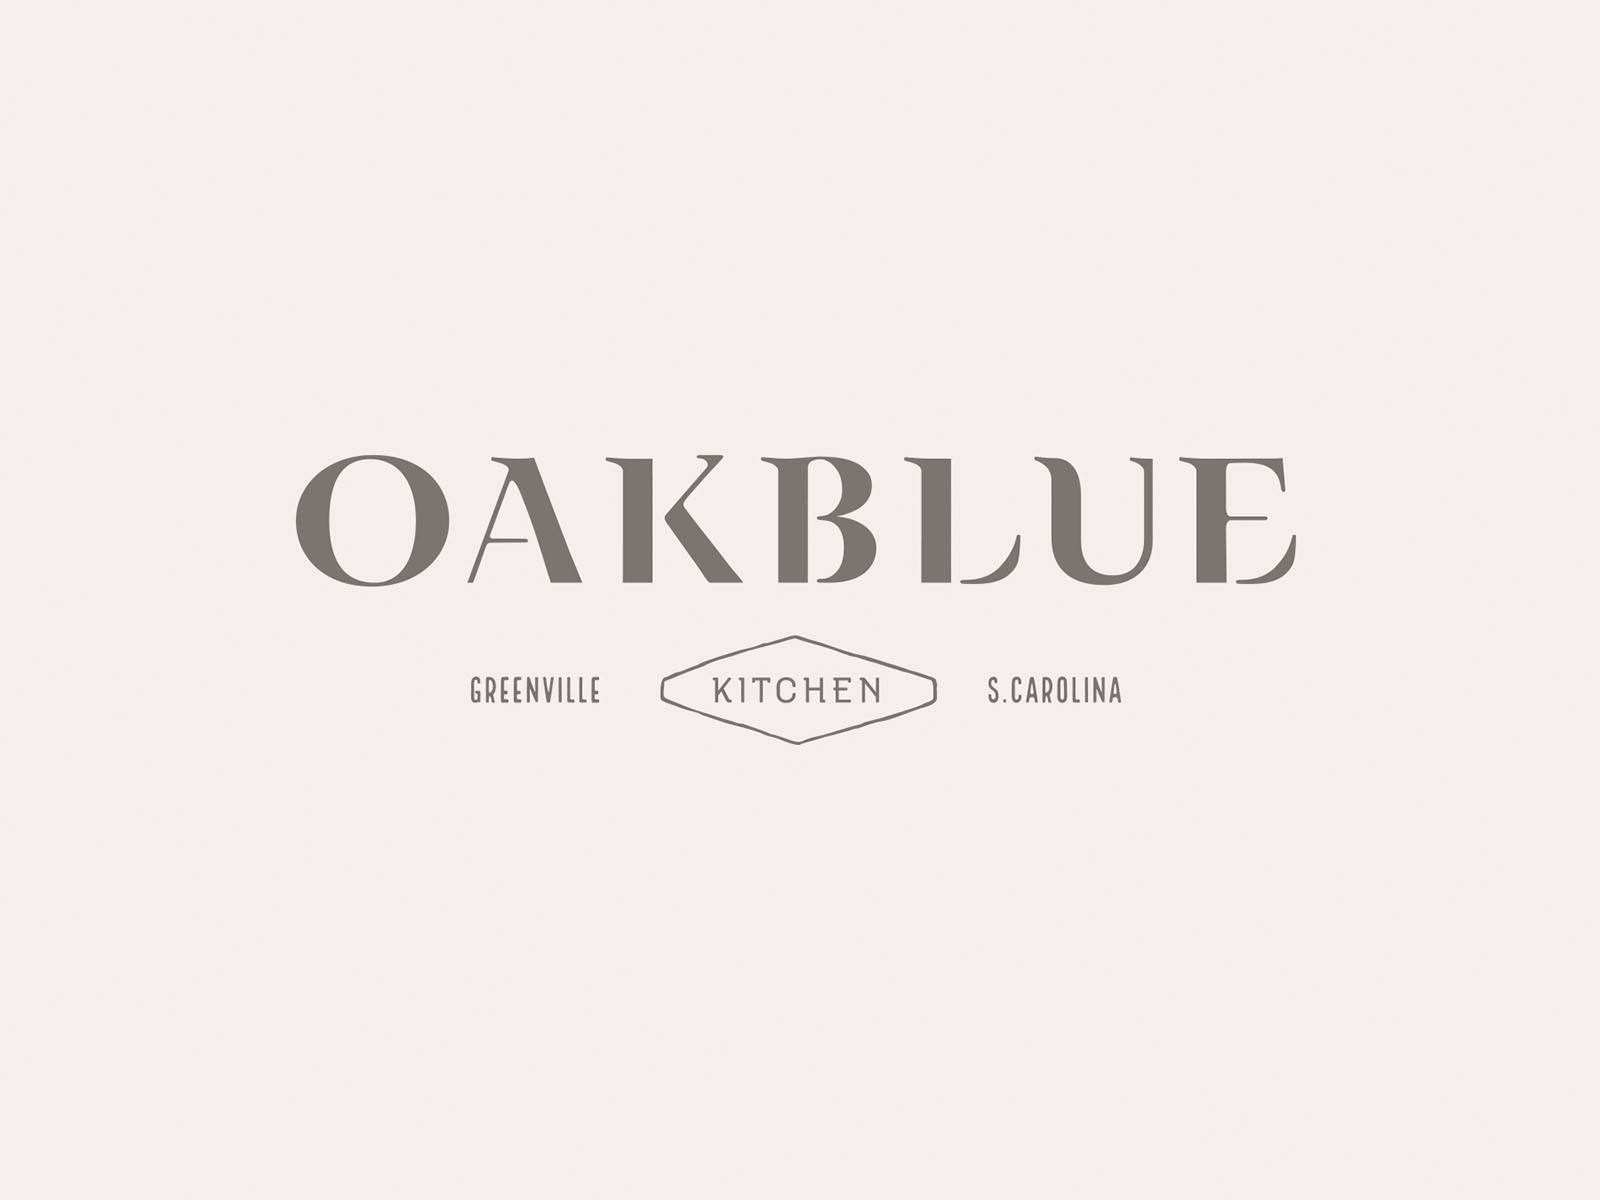 Oakblue Kitchen branding design, showing the logo in gray, designed by graphic artist Russell Shaw, for the restaurant.